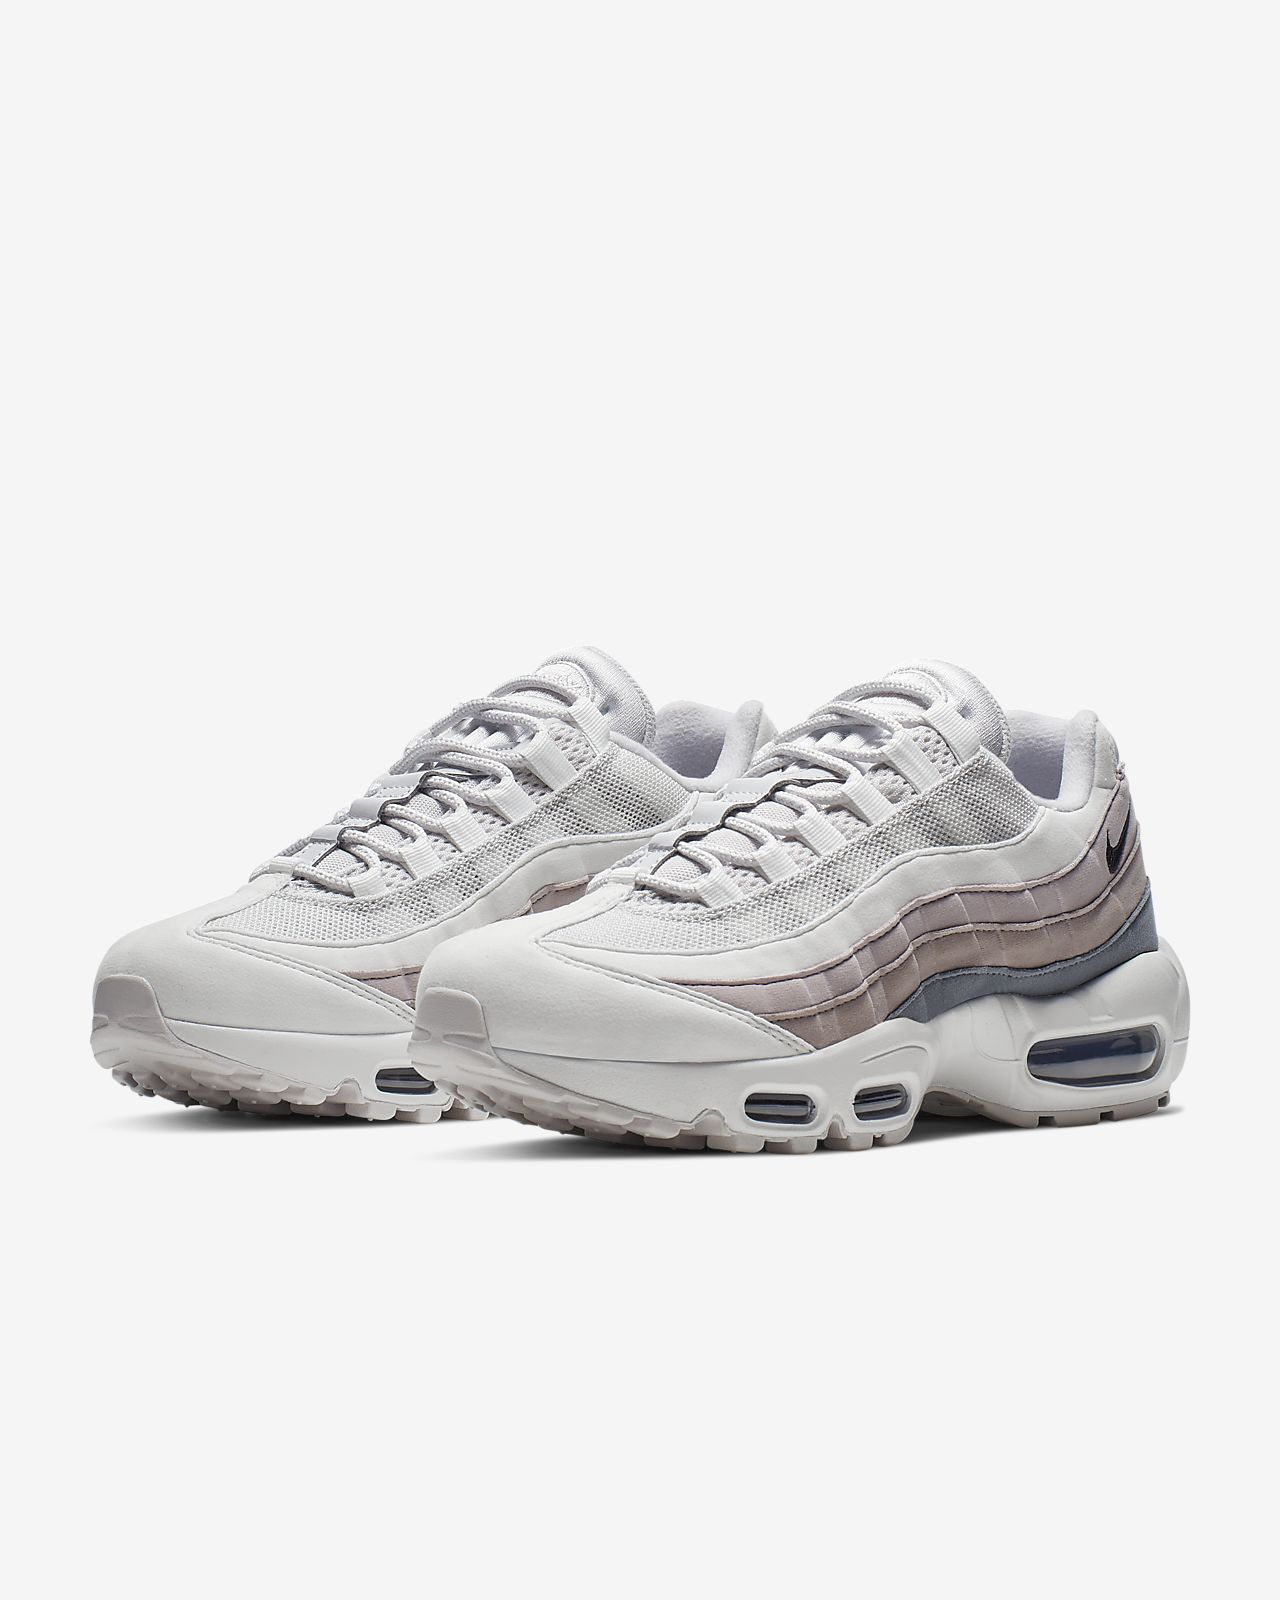 71d095c31d Nike Air Max 95 Women's Shoe. Nike.com AU